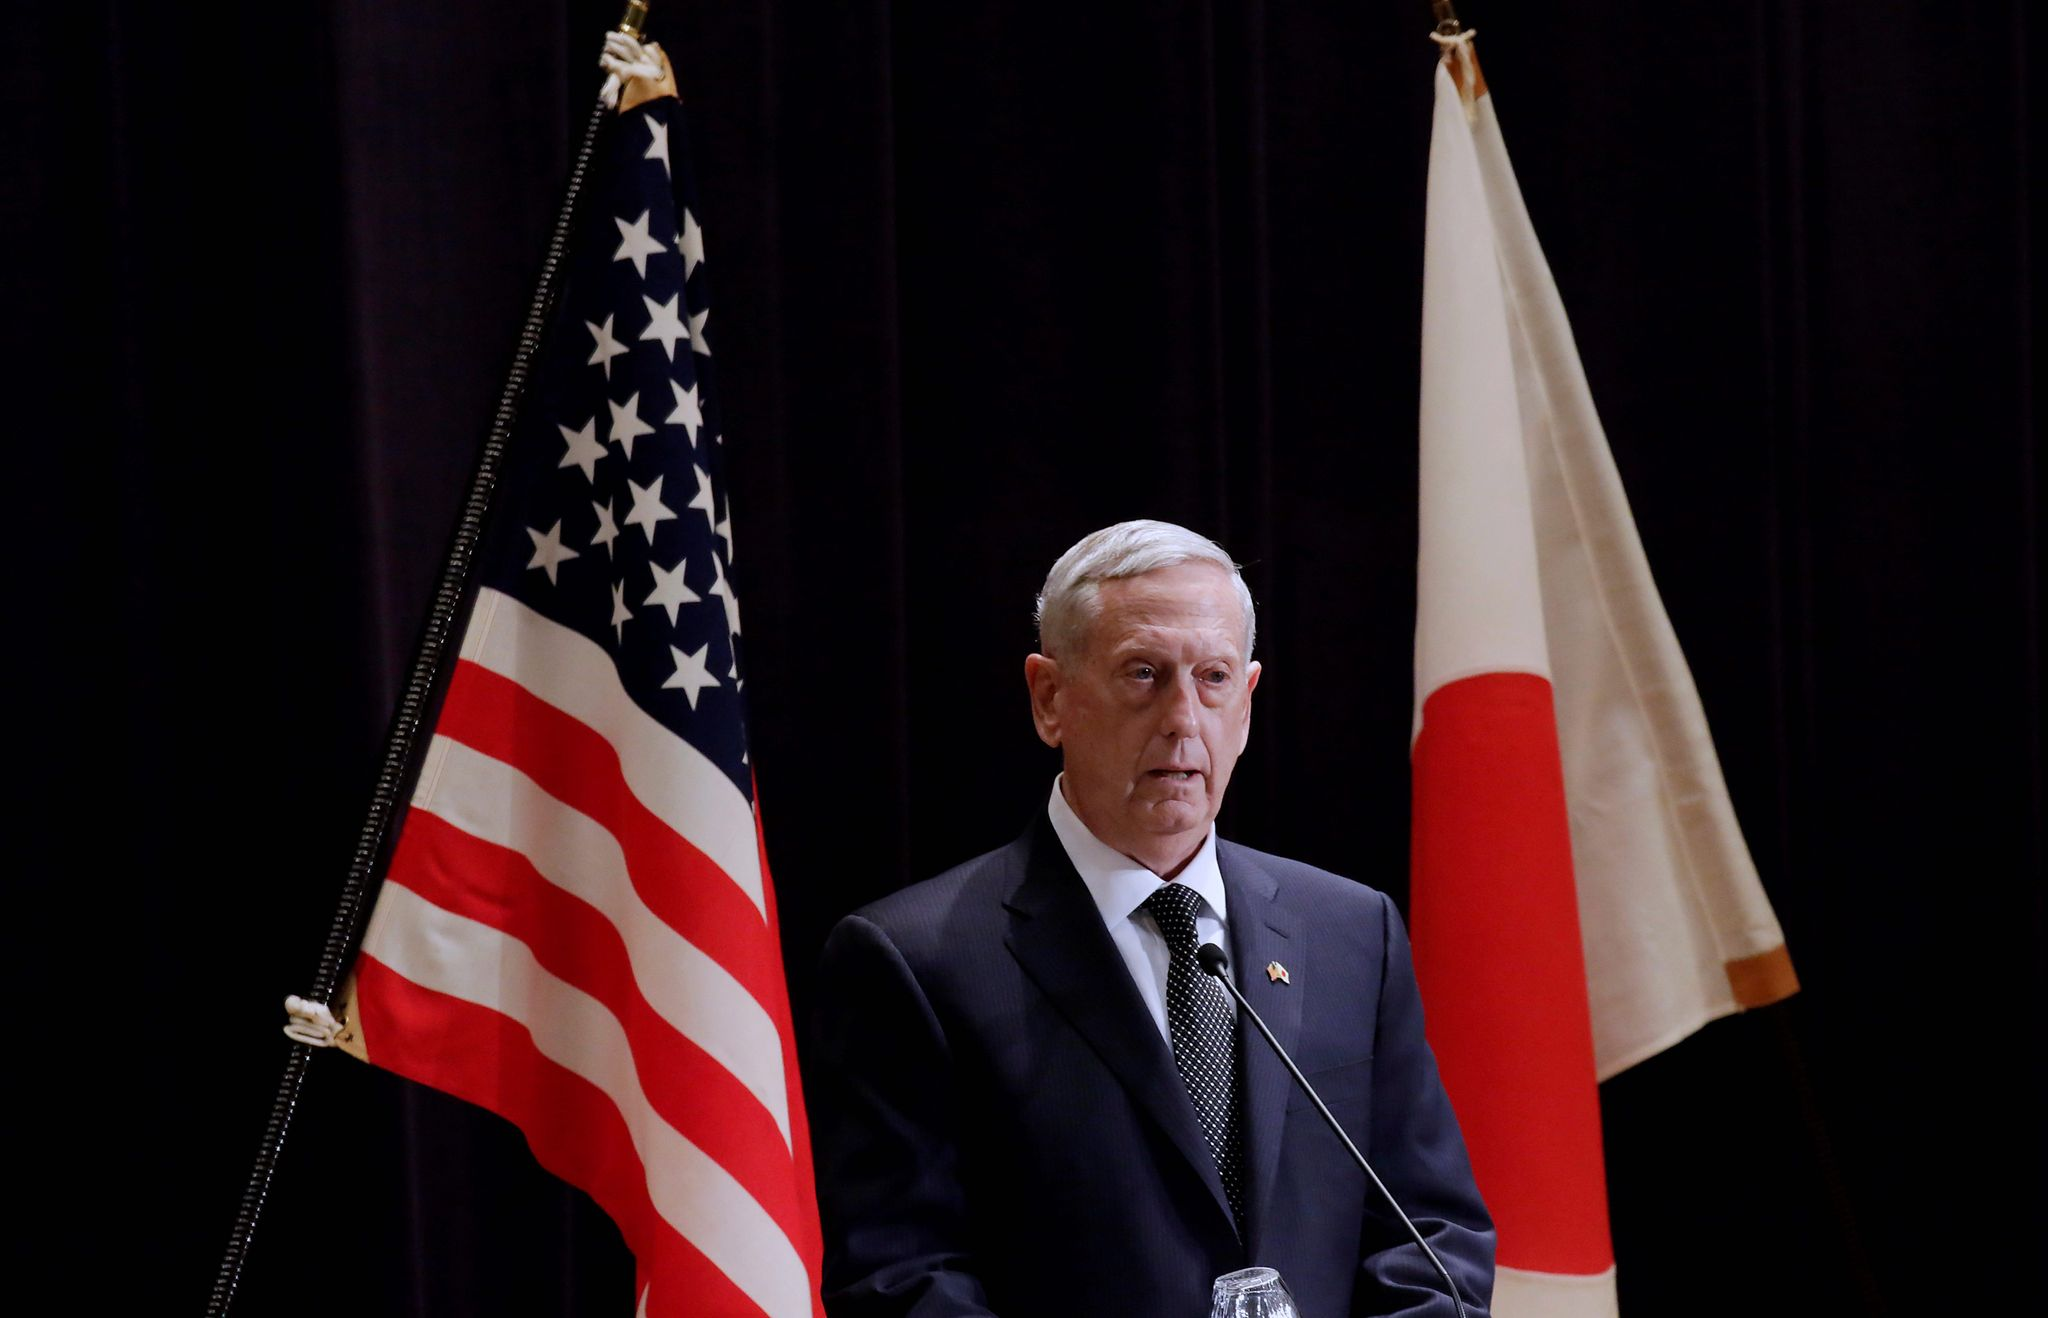 James Mattis: U.S. forces likely to stay in Okinawa amid China tensions